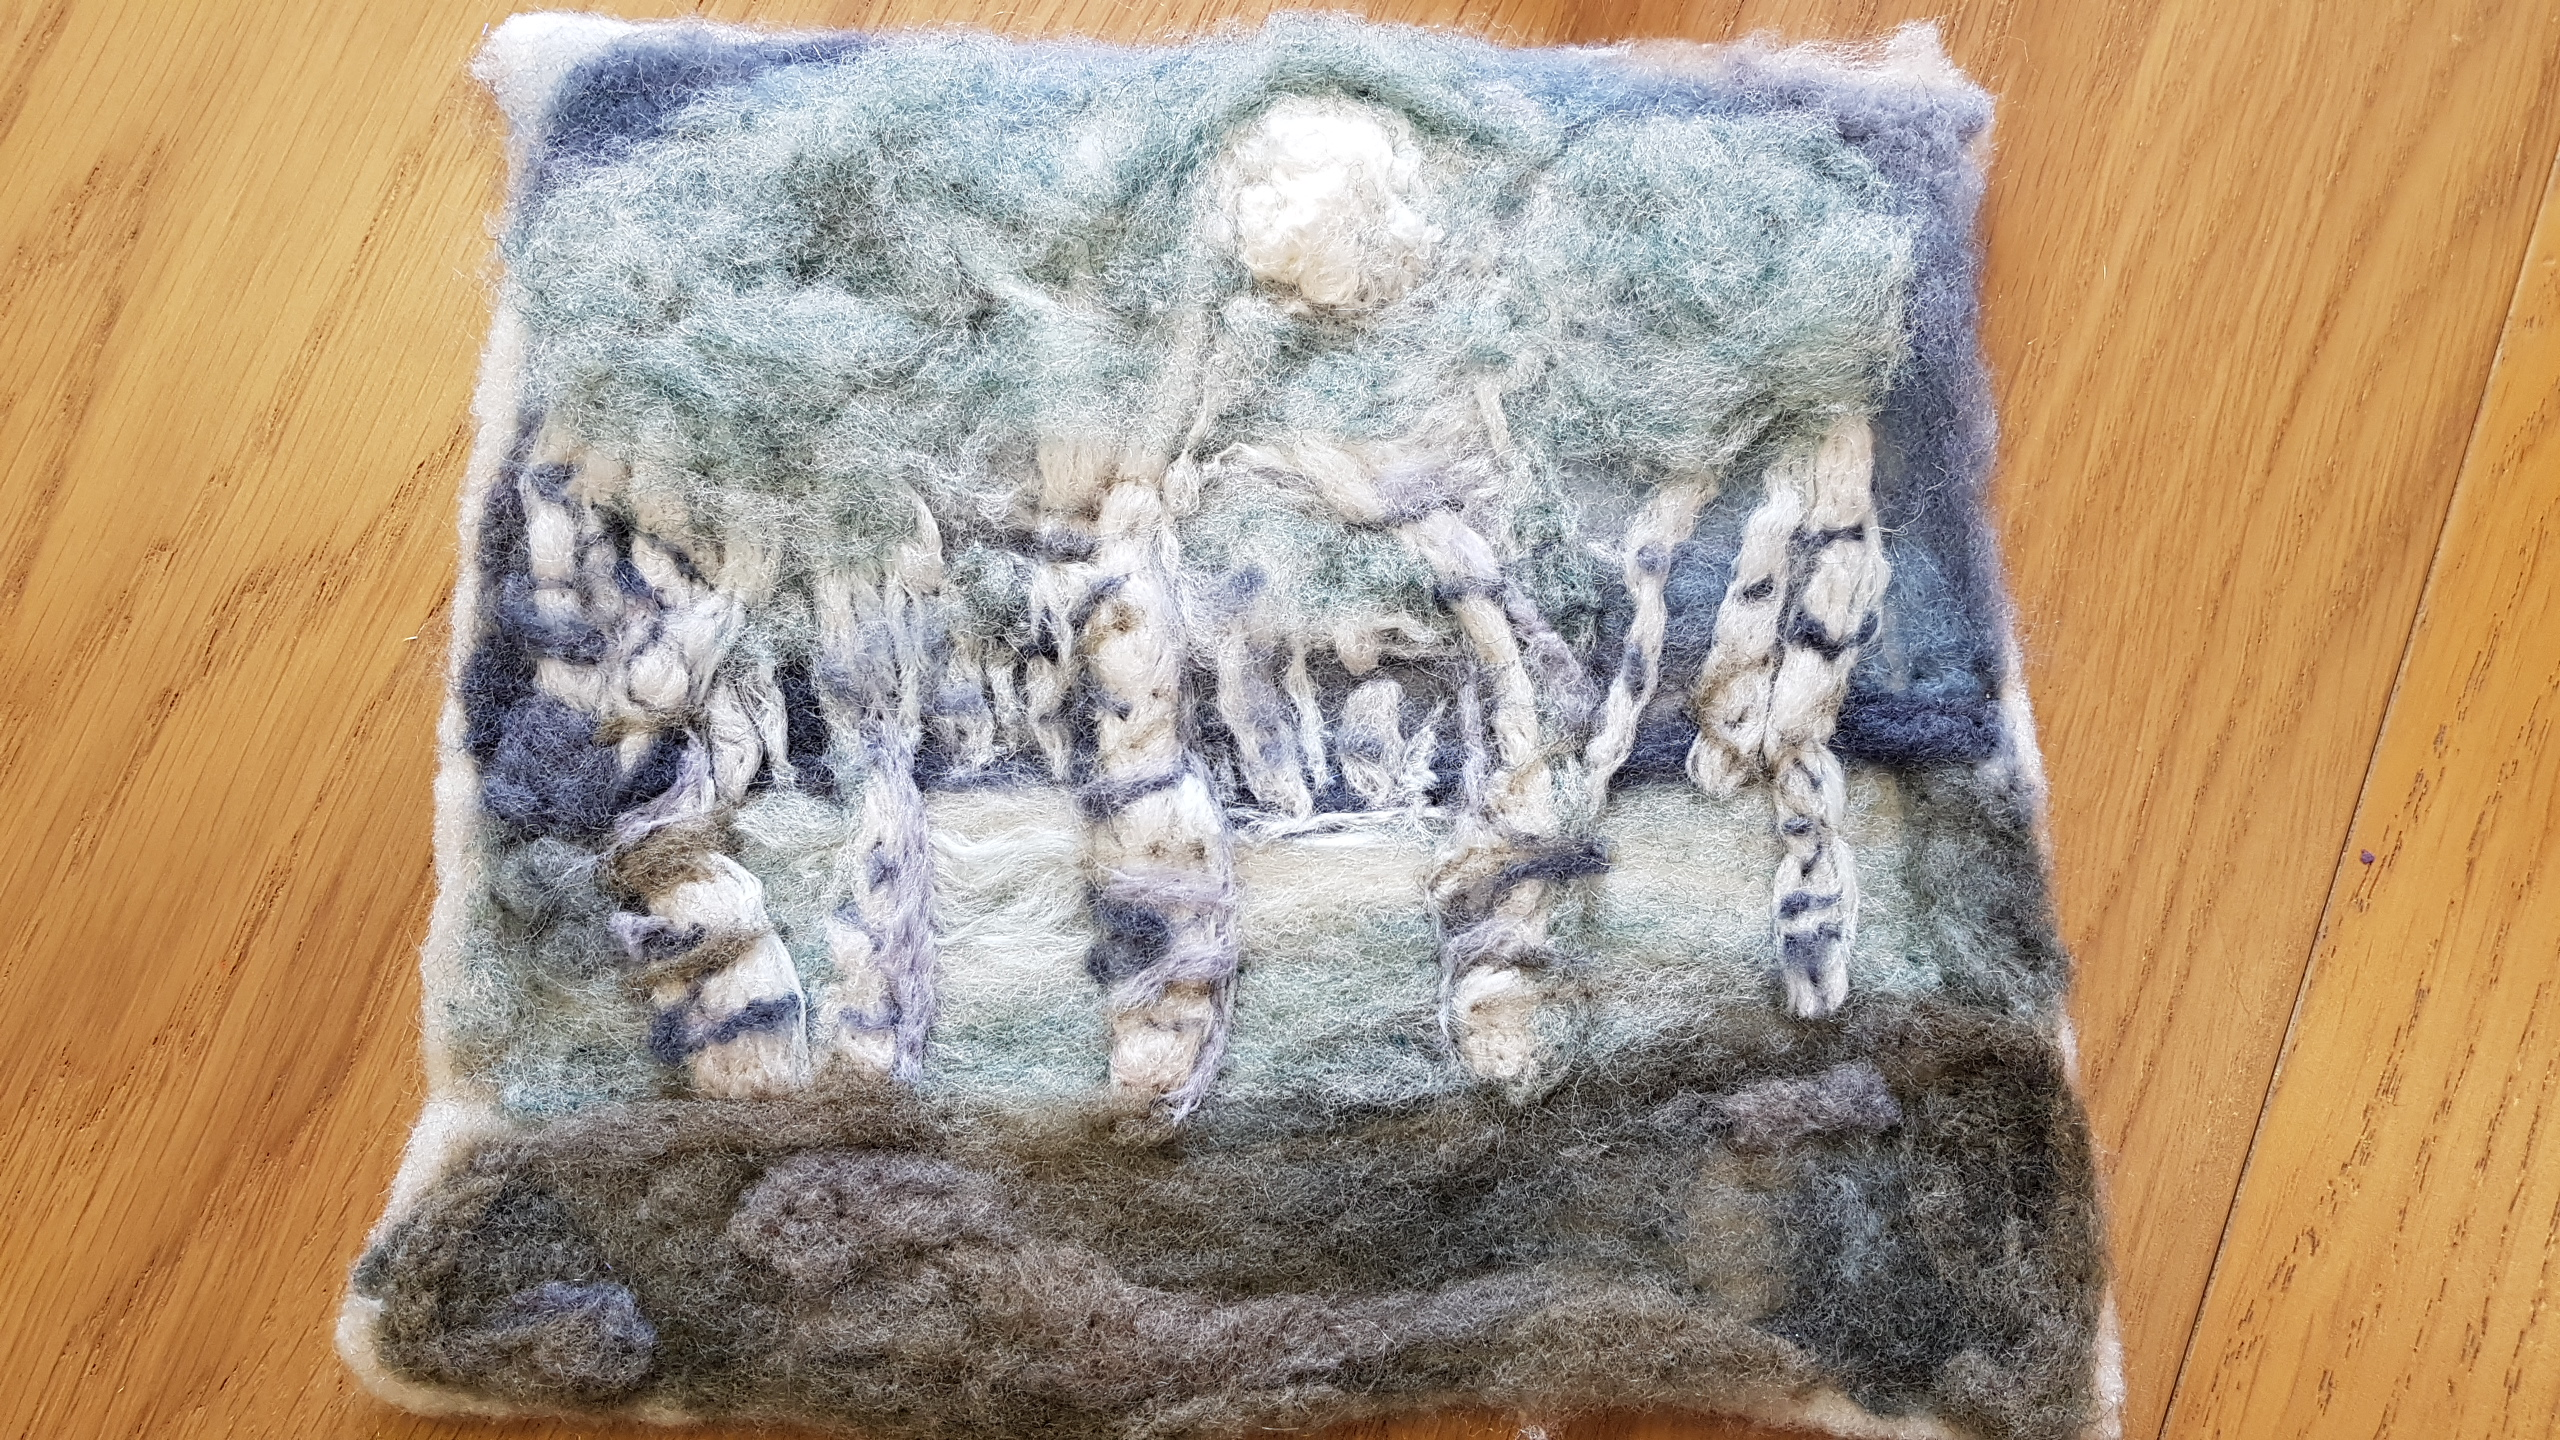 Hand-felted landscape made by a student from Debbie Tomkes' Friday Textiles Group